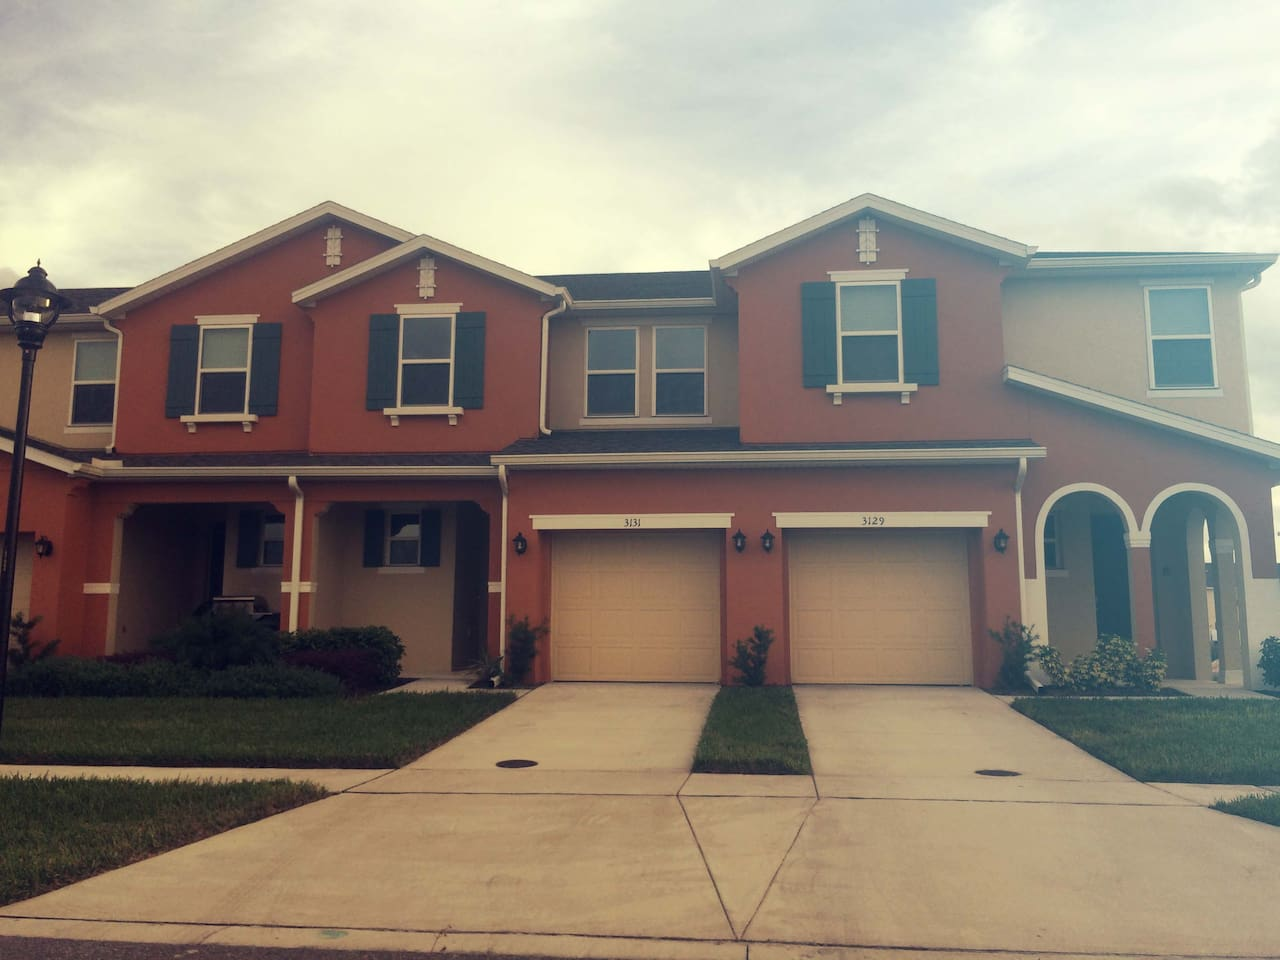 Townhome at Compass Bay - near Disney